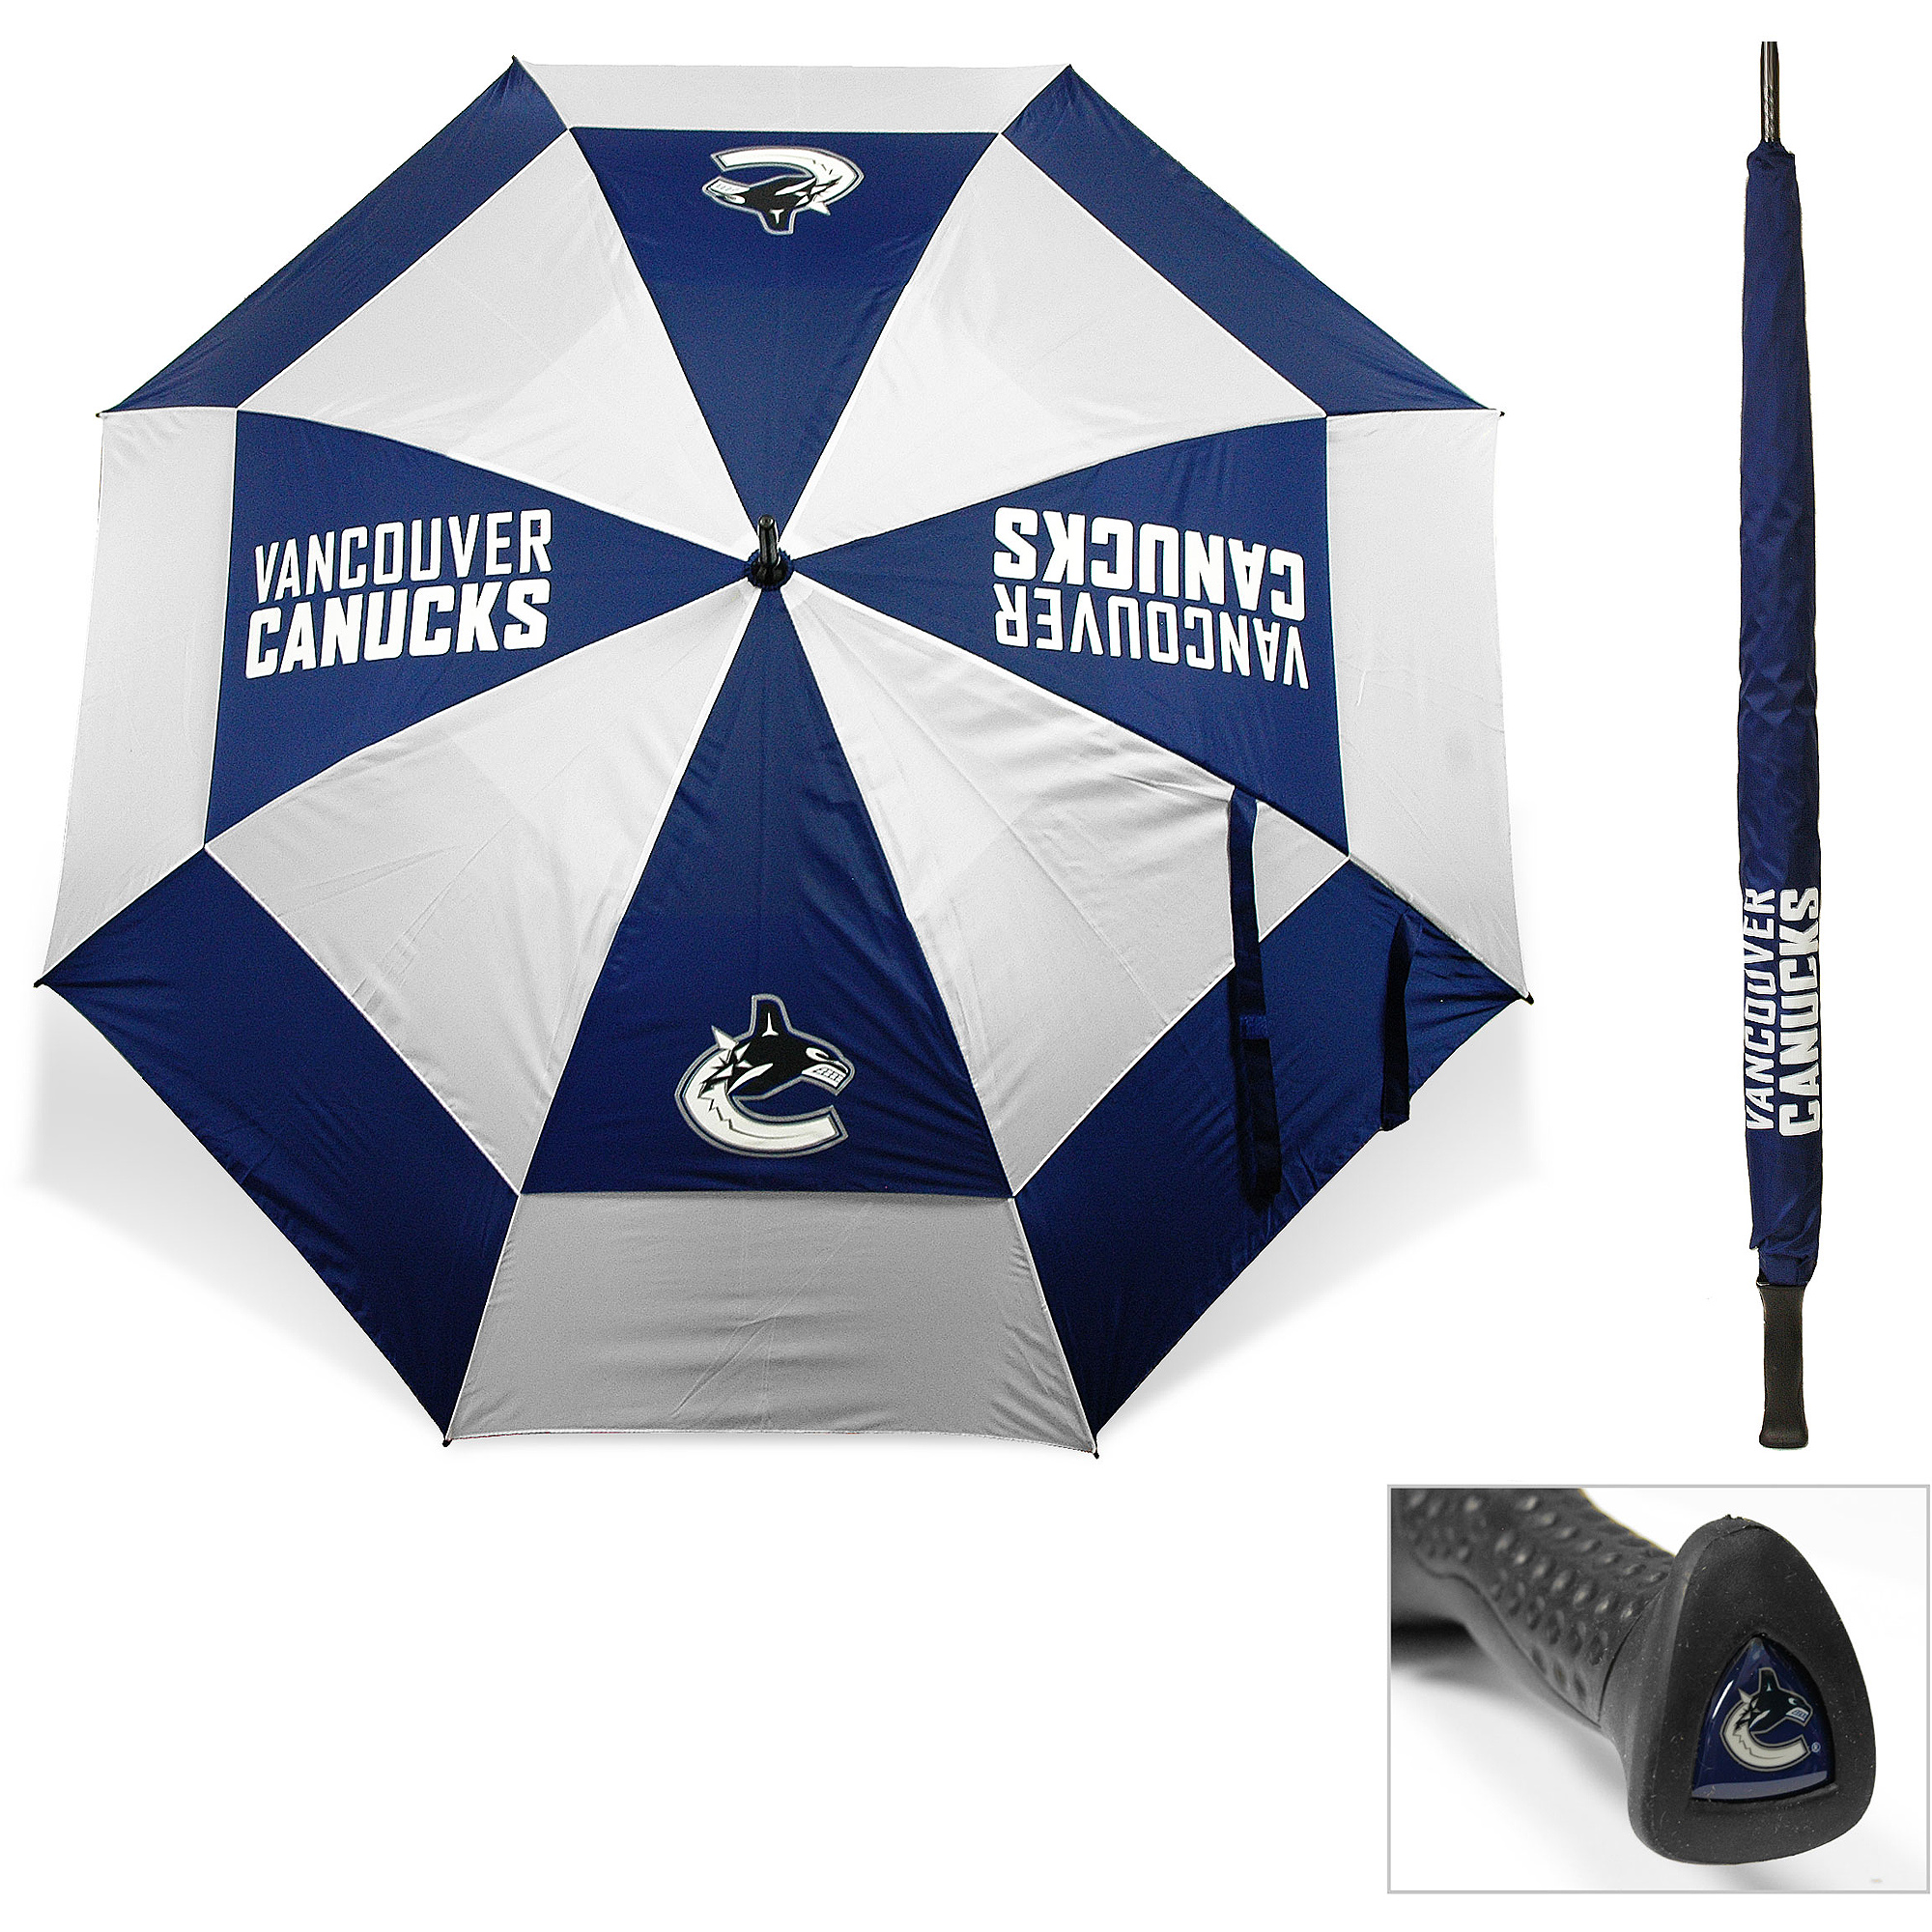 Vancouver Canucks Umbrella